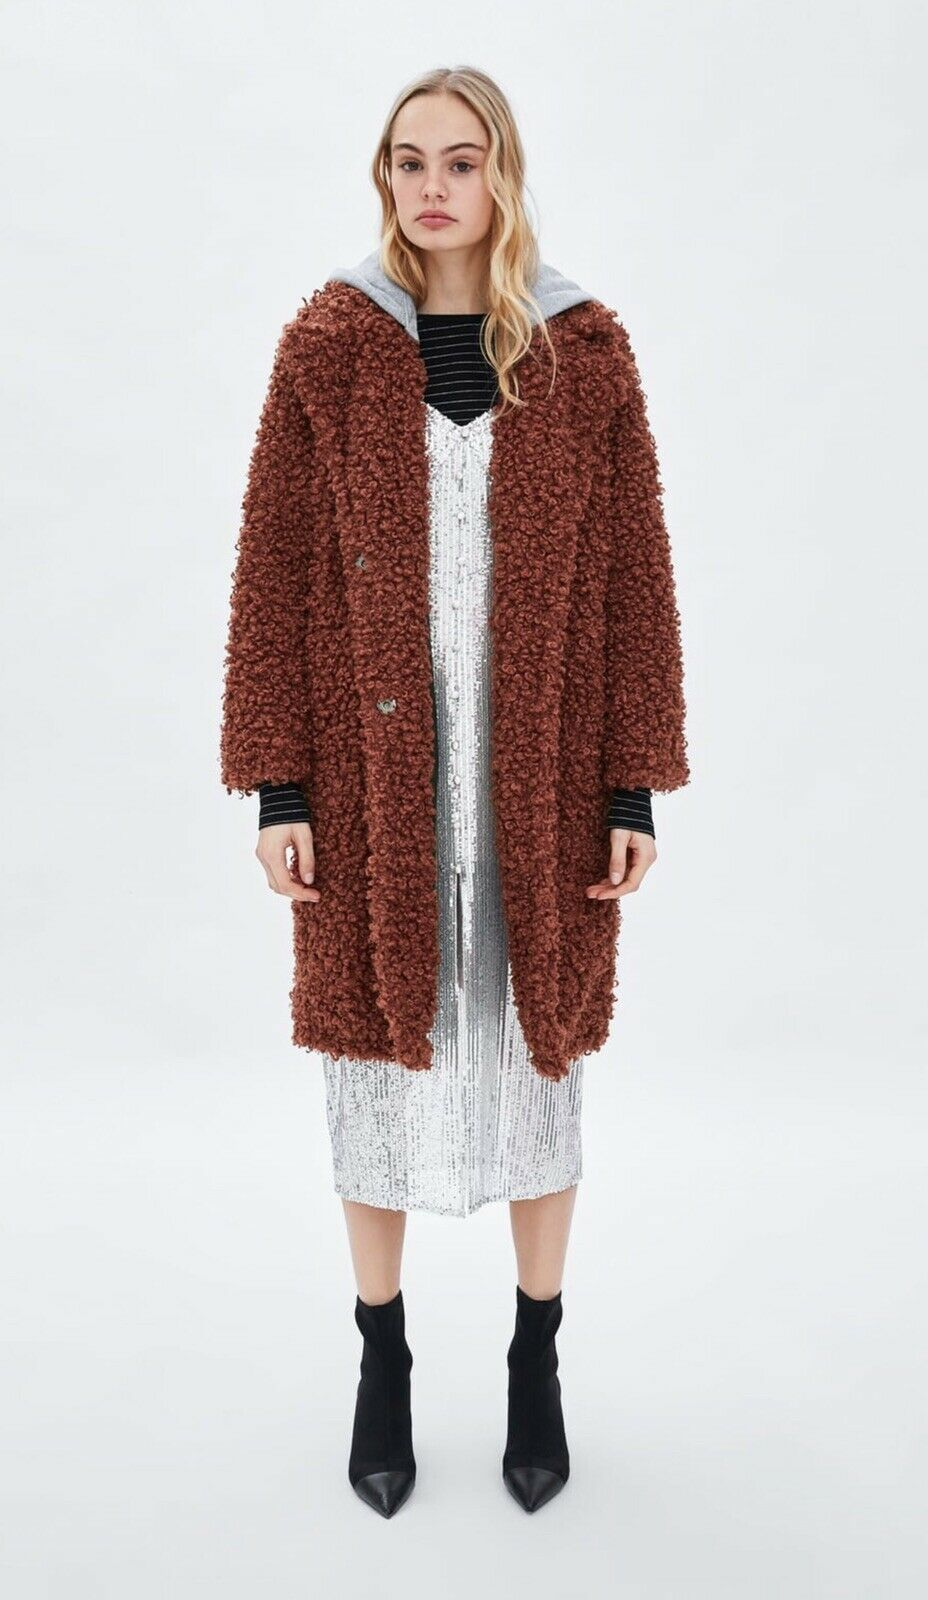 NWT ZARA AW18 CONTRASTING HOODED FAUX SHEARLING MEDIUM RED orange 4341 213 675